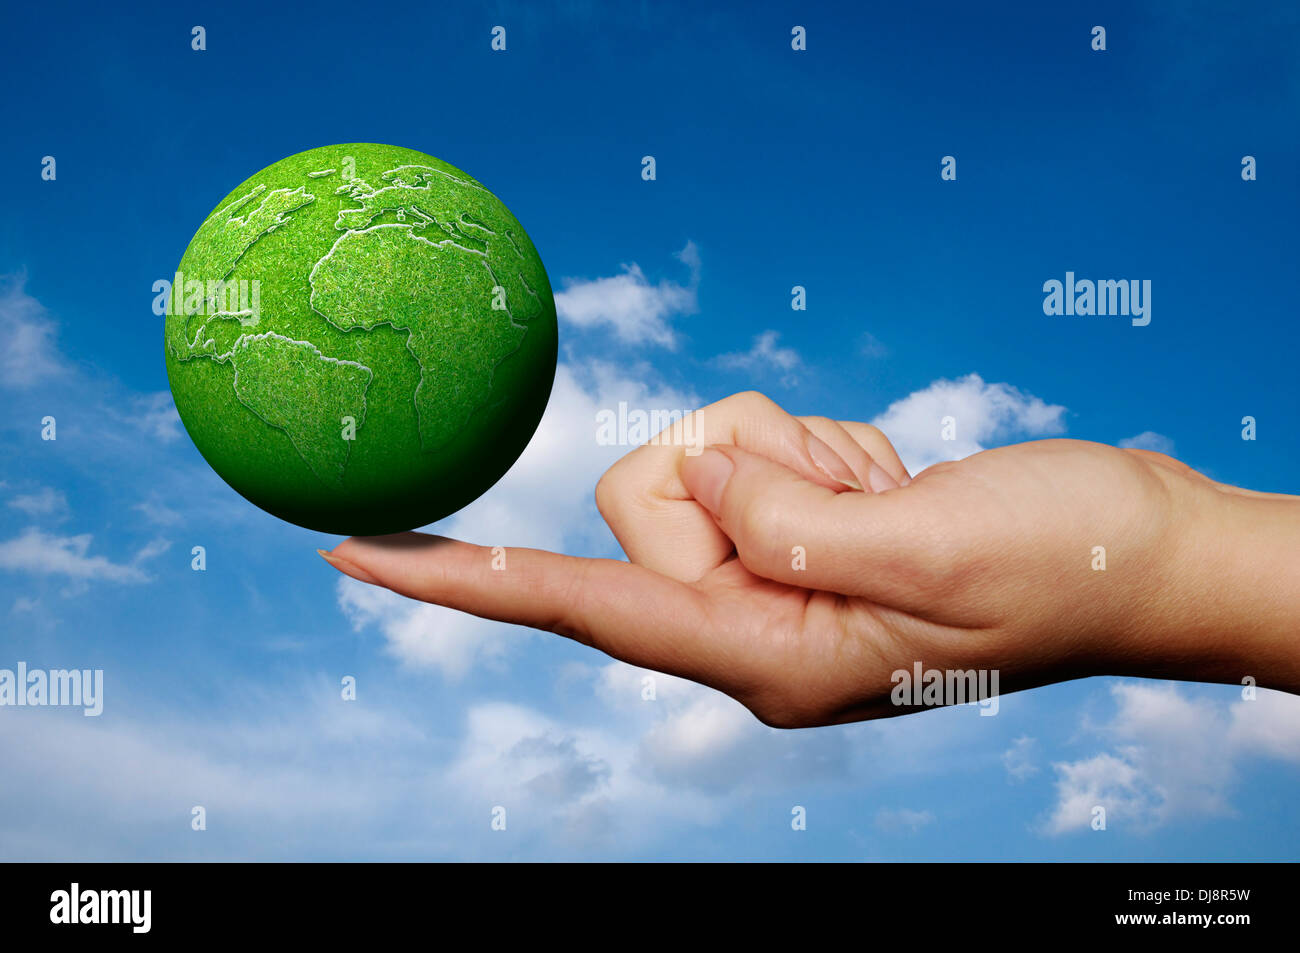 woman holding a green Earth on the tip of her finger - Stock Image